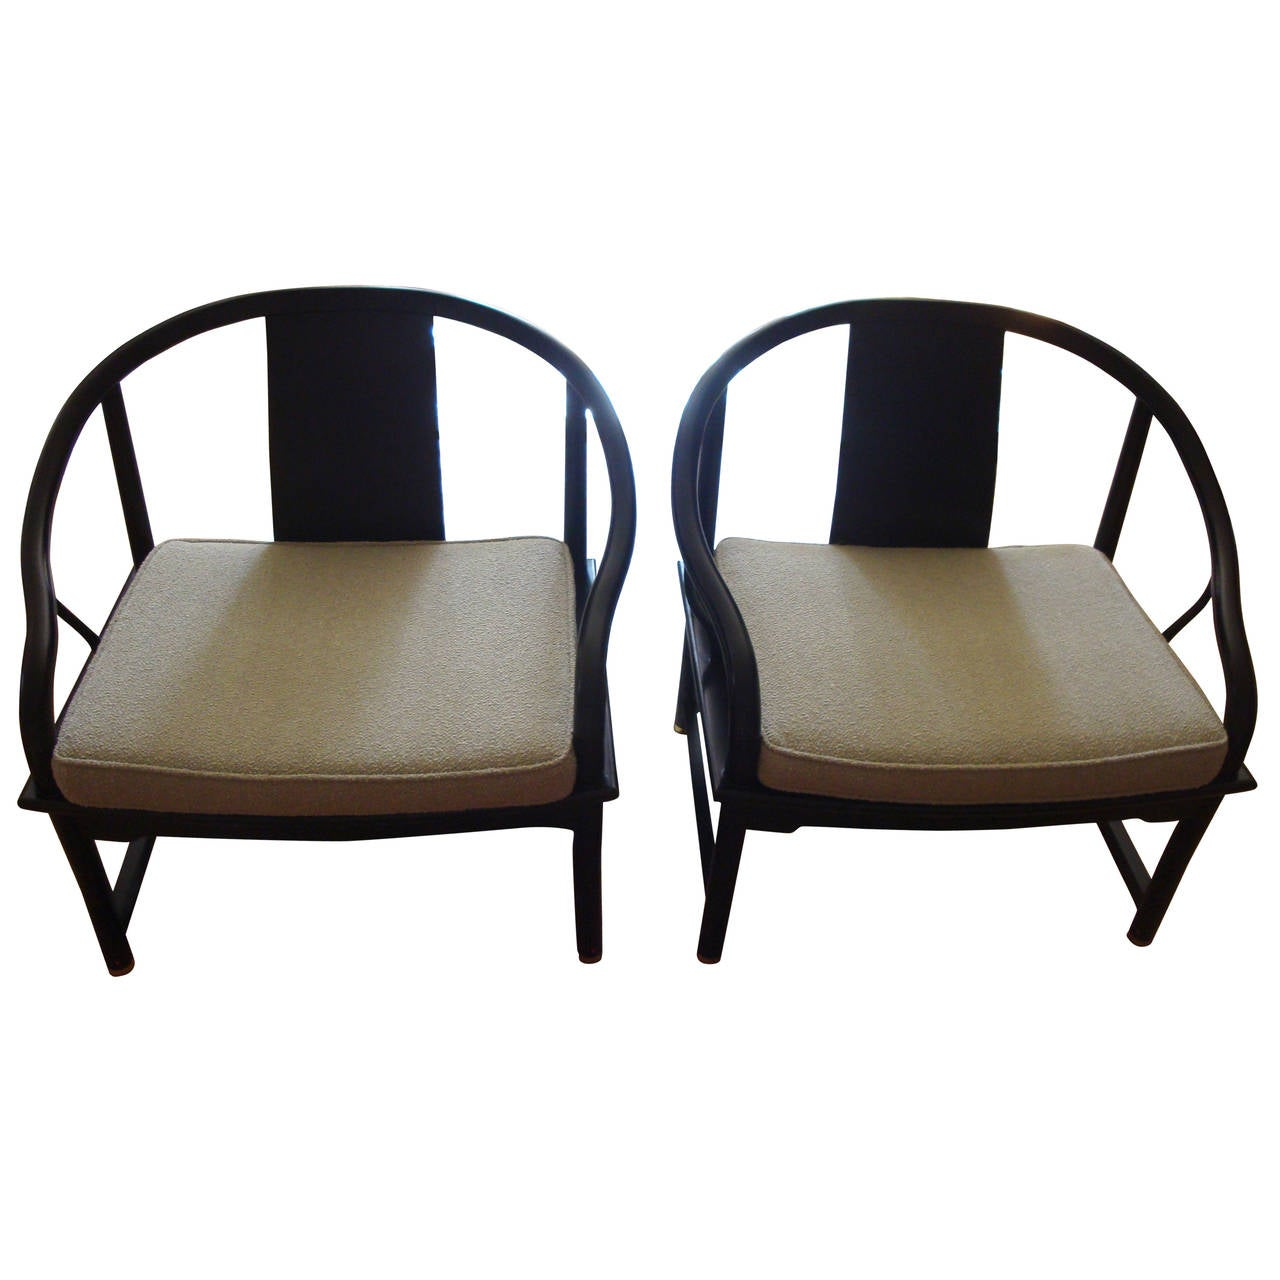 Mid century modern baker asian style caned chairs at 1stdibs Mid century chairs